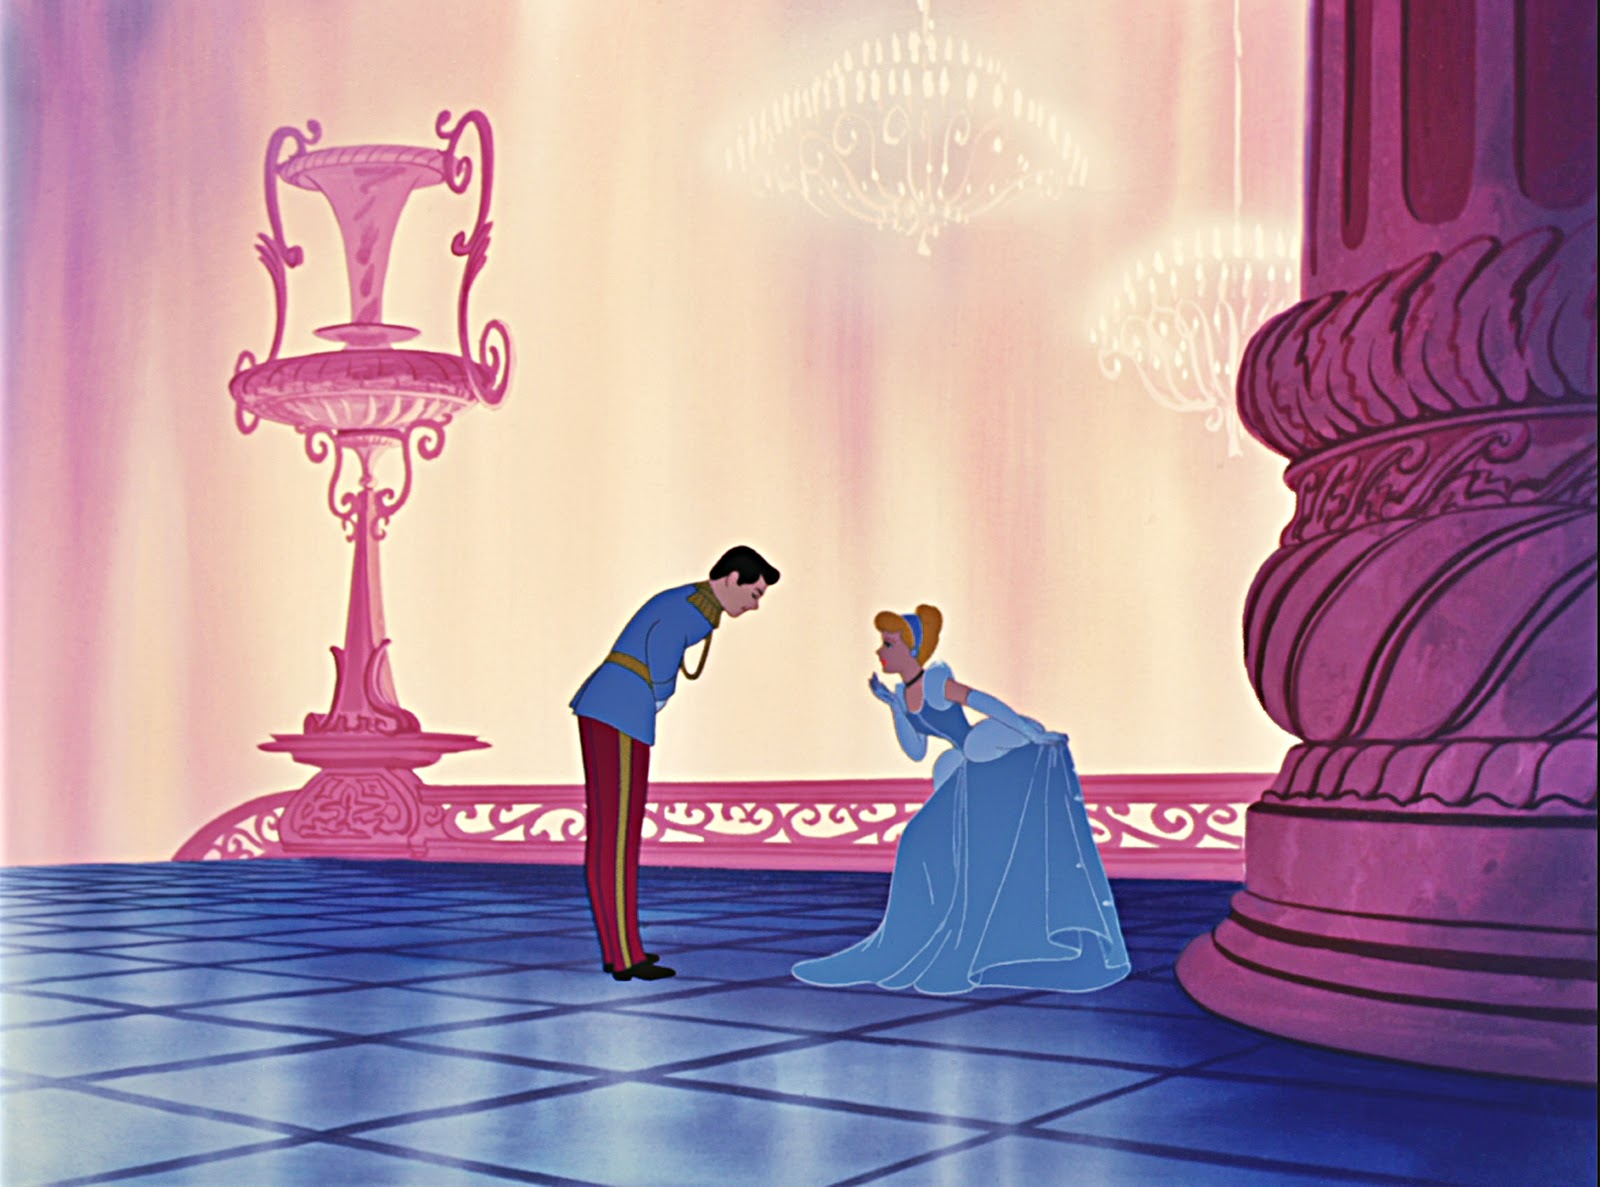 Cinderella Disney 1950 Cinderella meeting Prince Charming at Ball